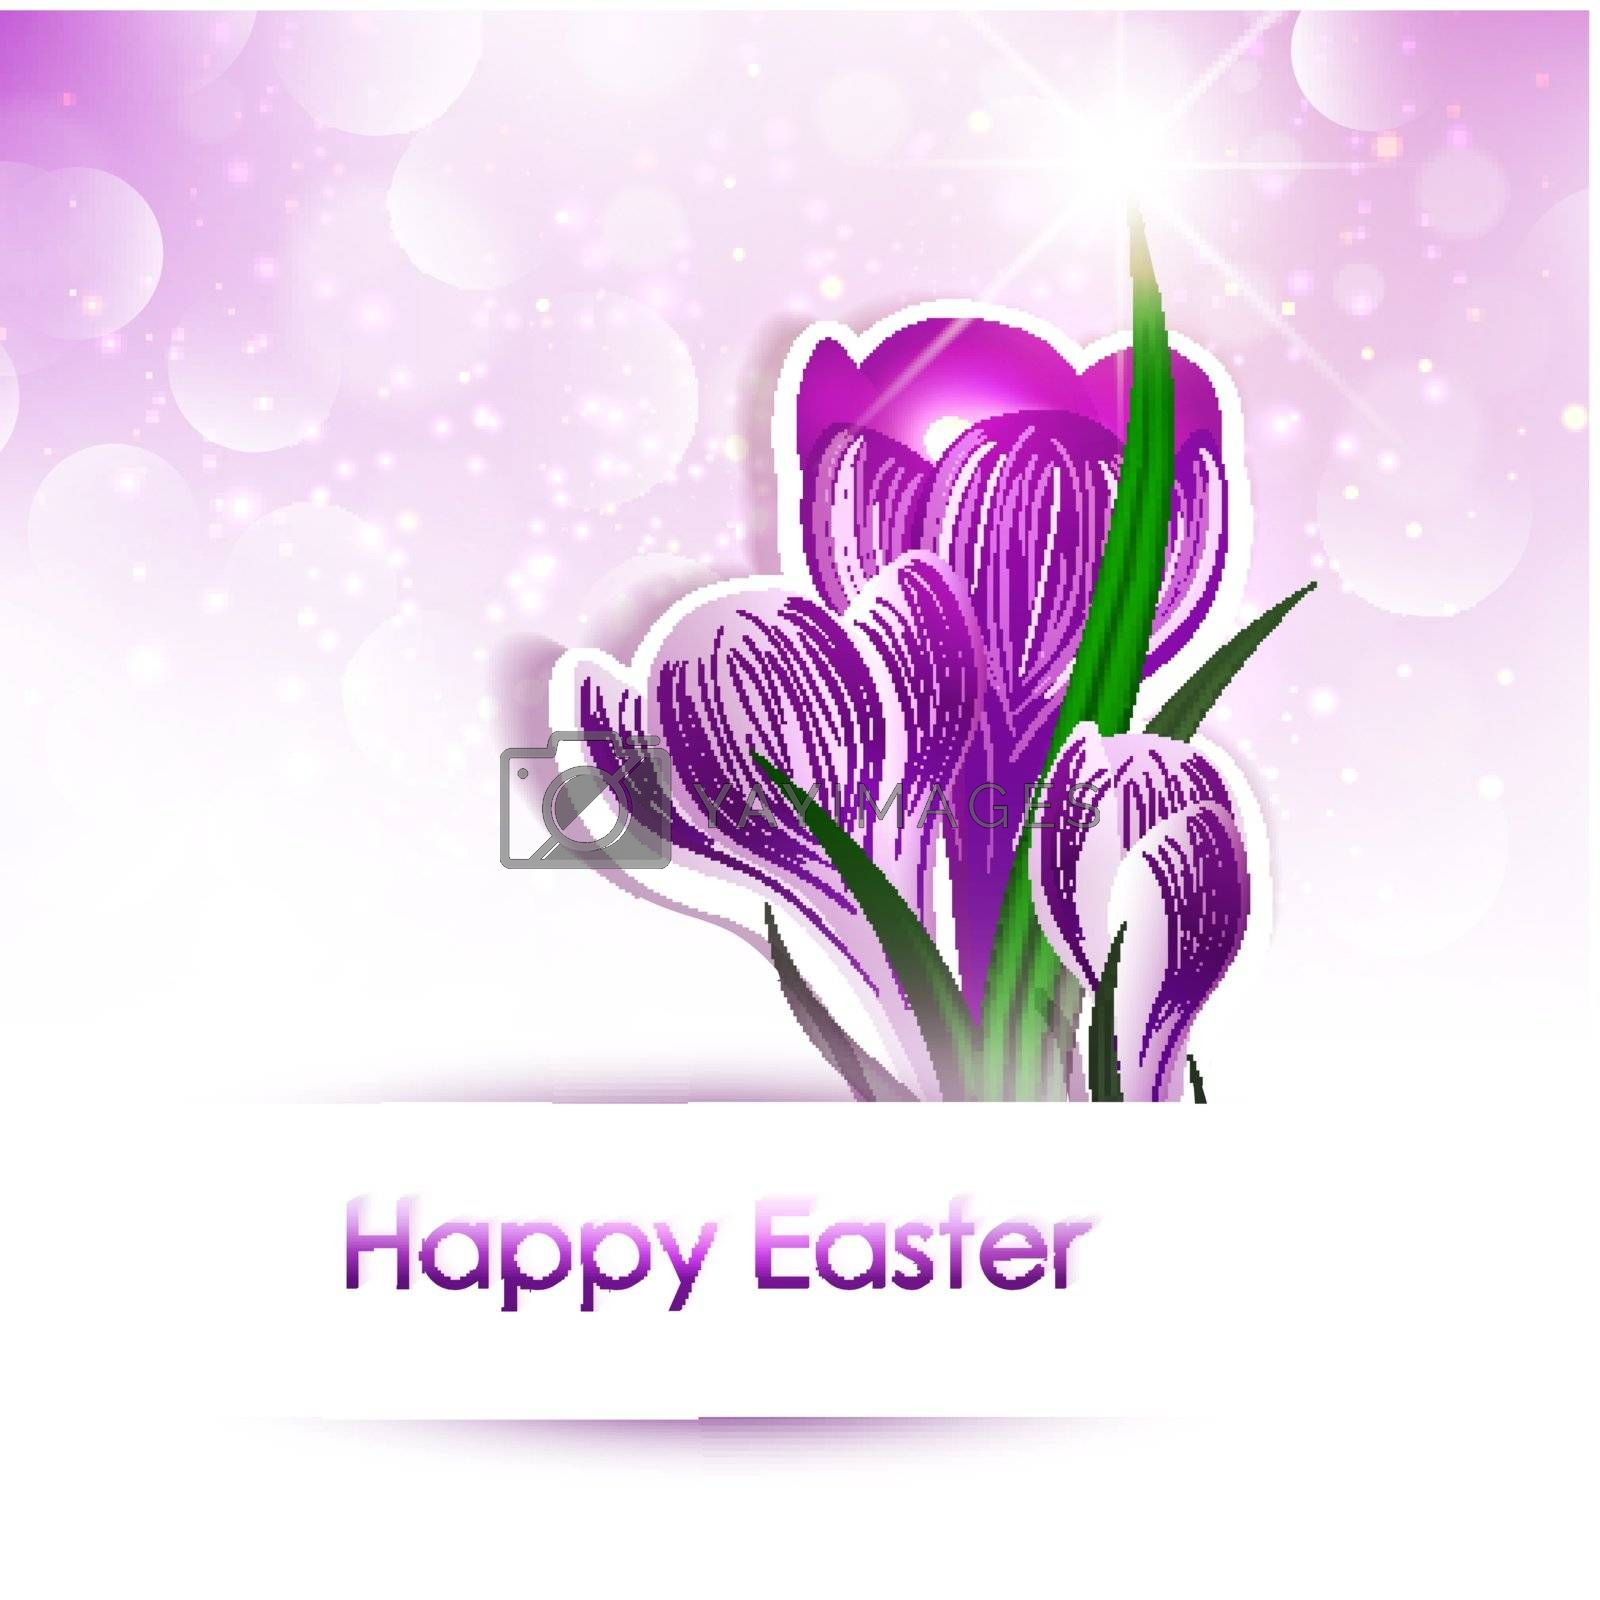 Happy Easter Greeting With Crocus Flowers Over Bright Background